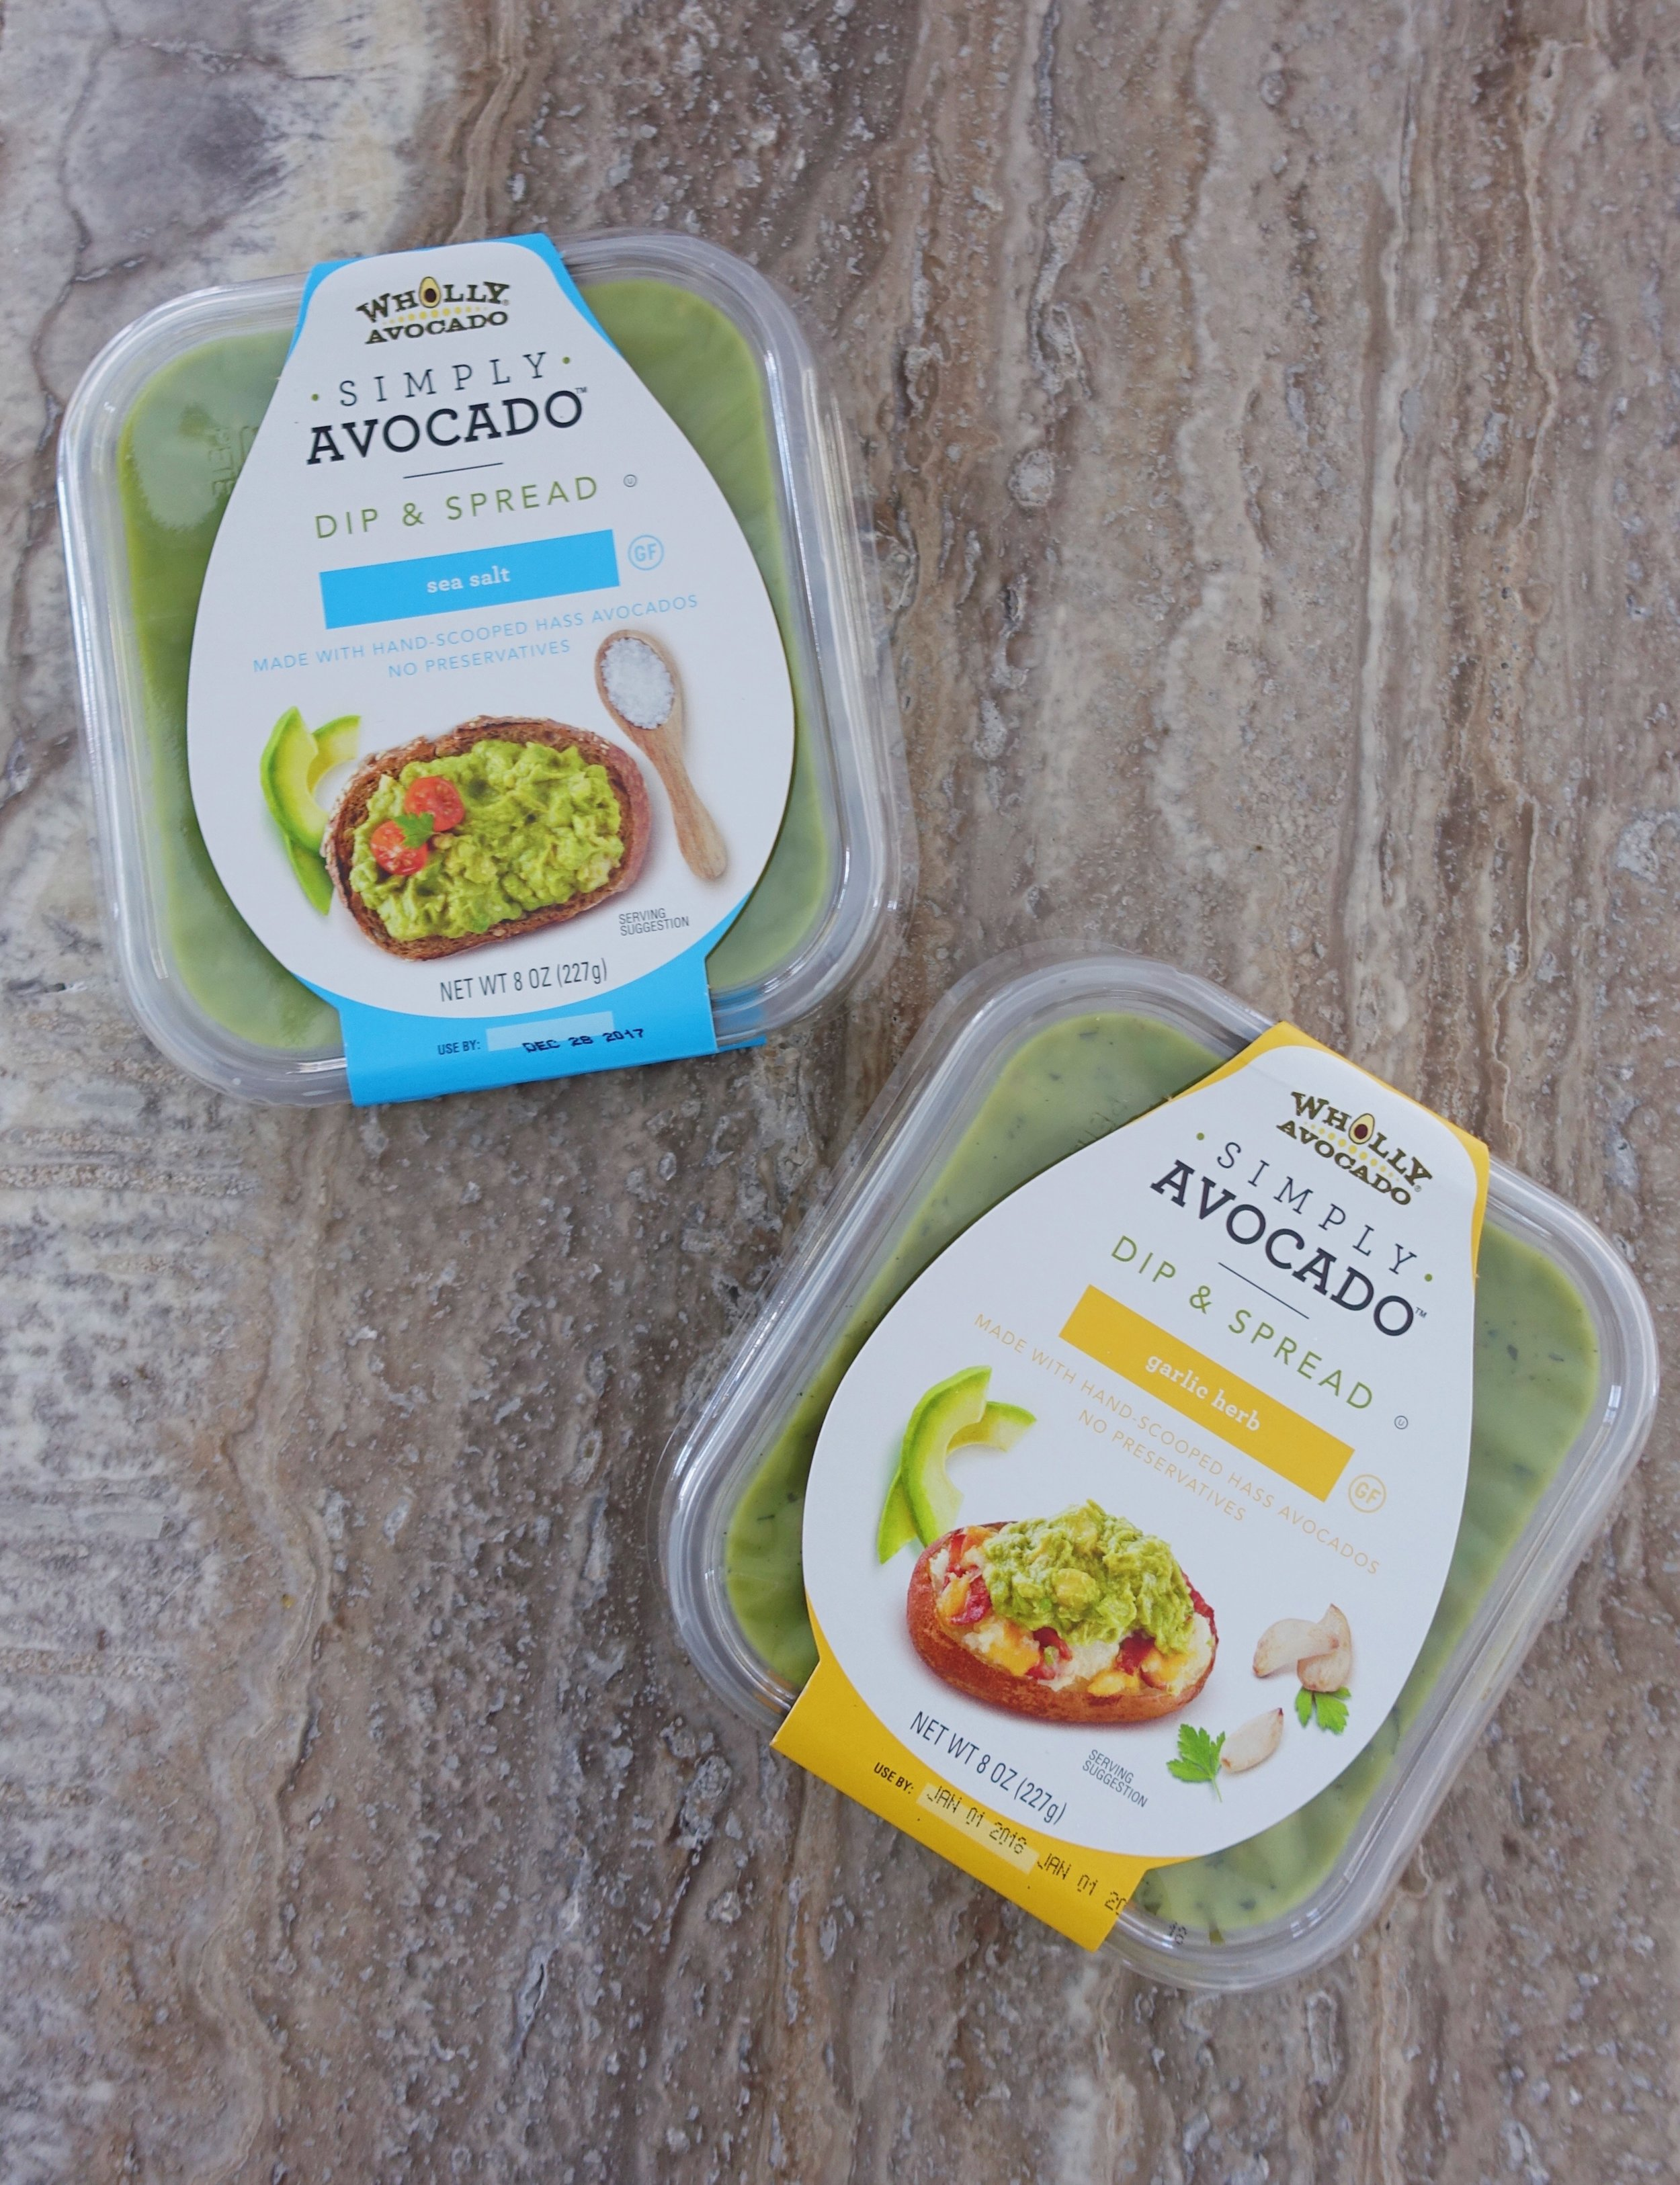 WHOLLY GUACAMOLE®- SIMPLY AVOCADO™ at Walmart